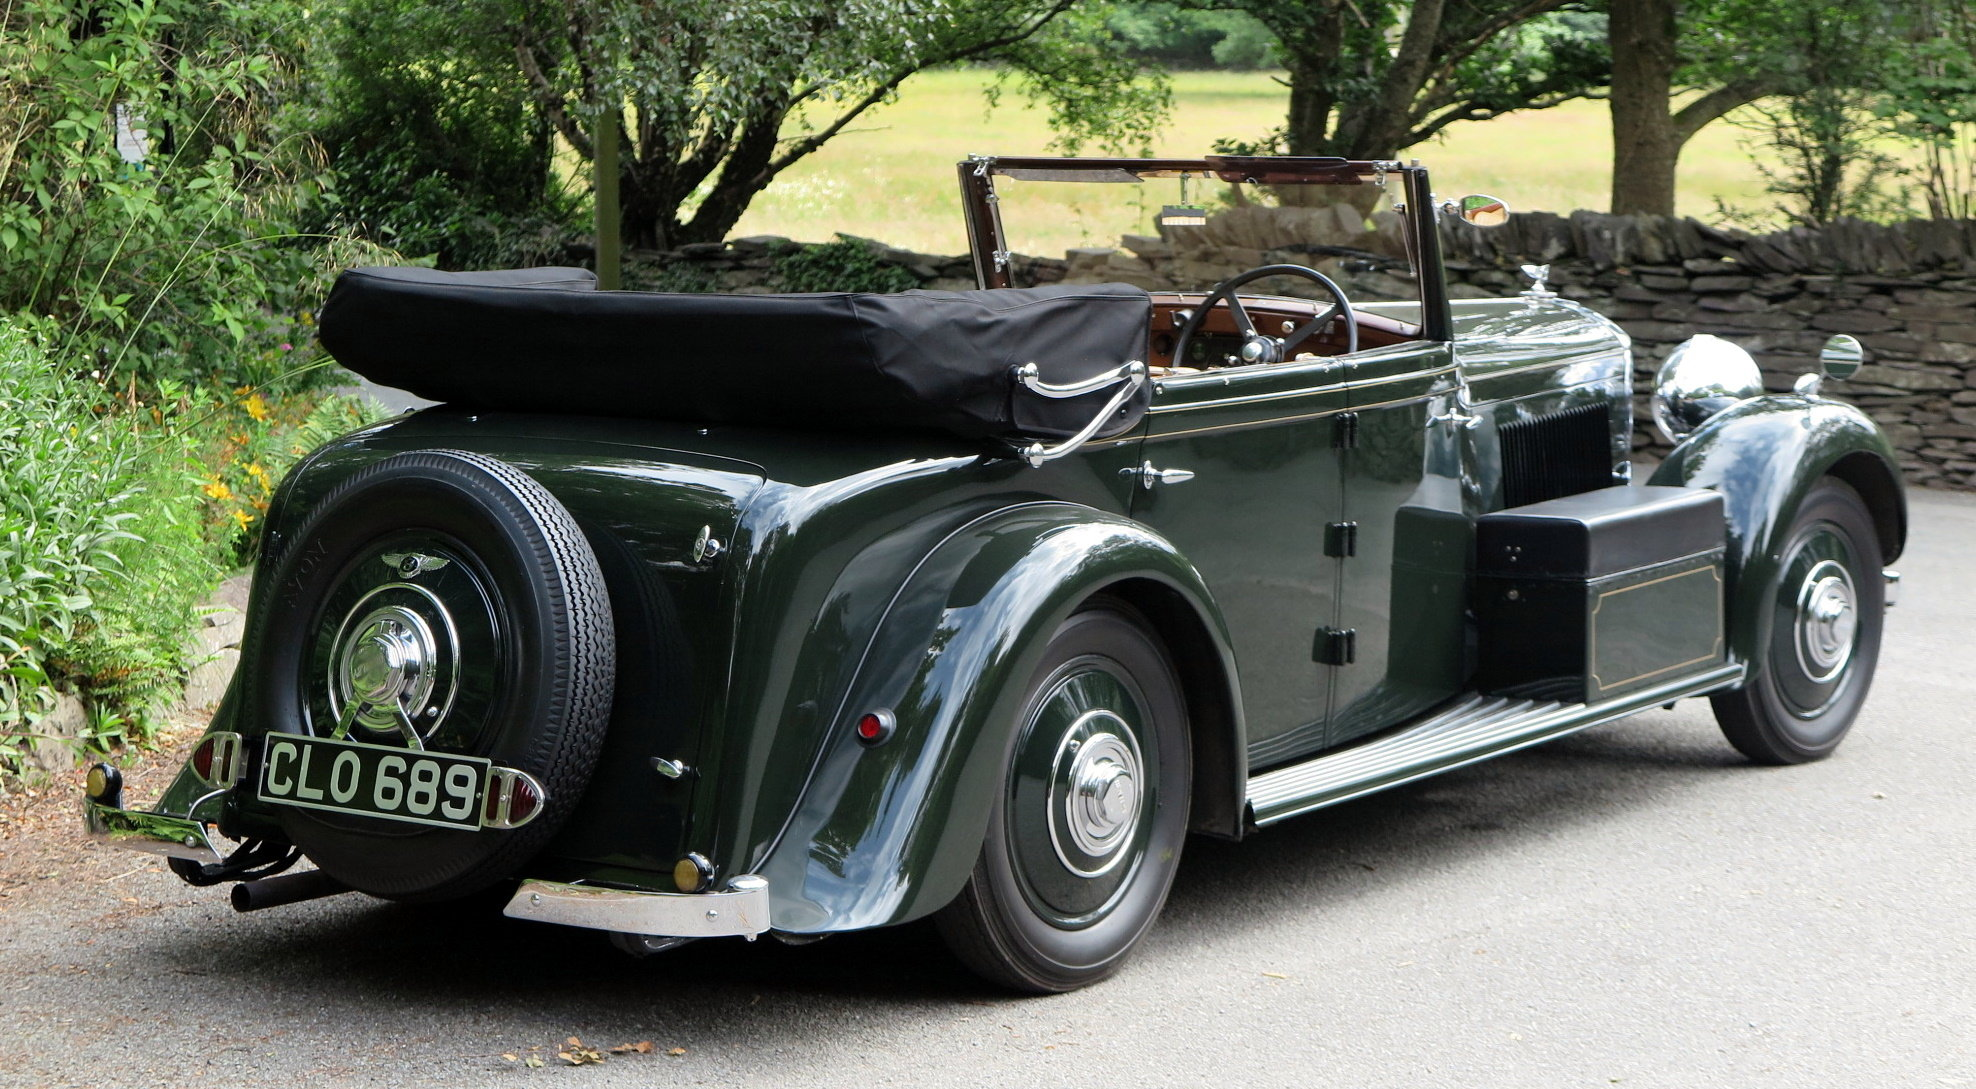 1936 Bentley 3½ Litre Carlton 4 Dr 'Allweather' Tourer B37FC For Sale (picture 2 of 6)